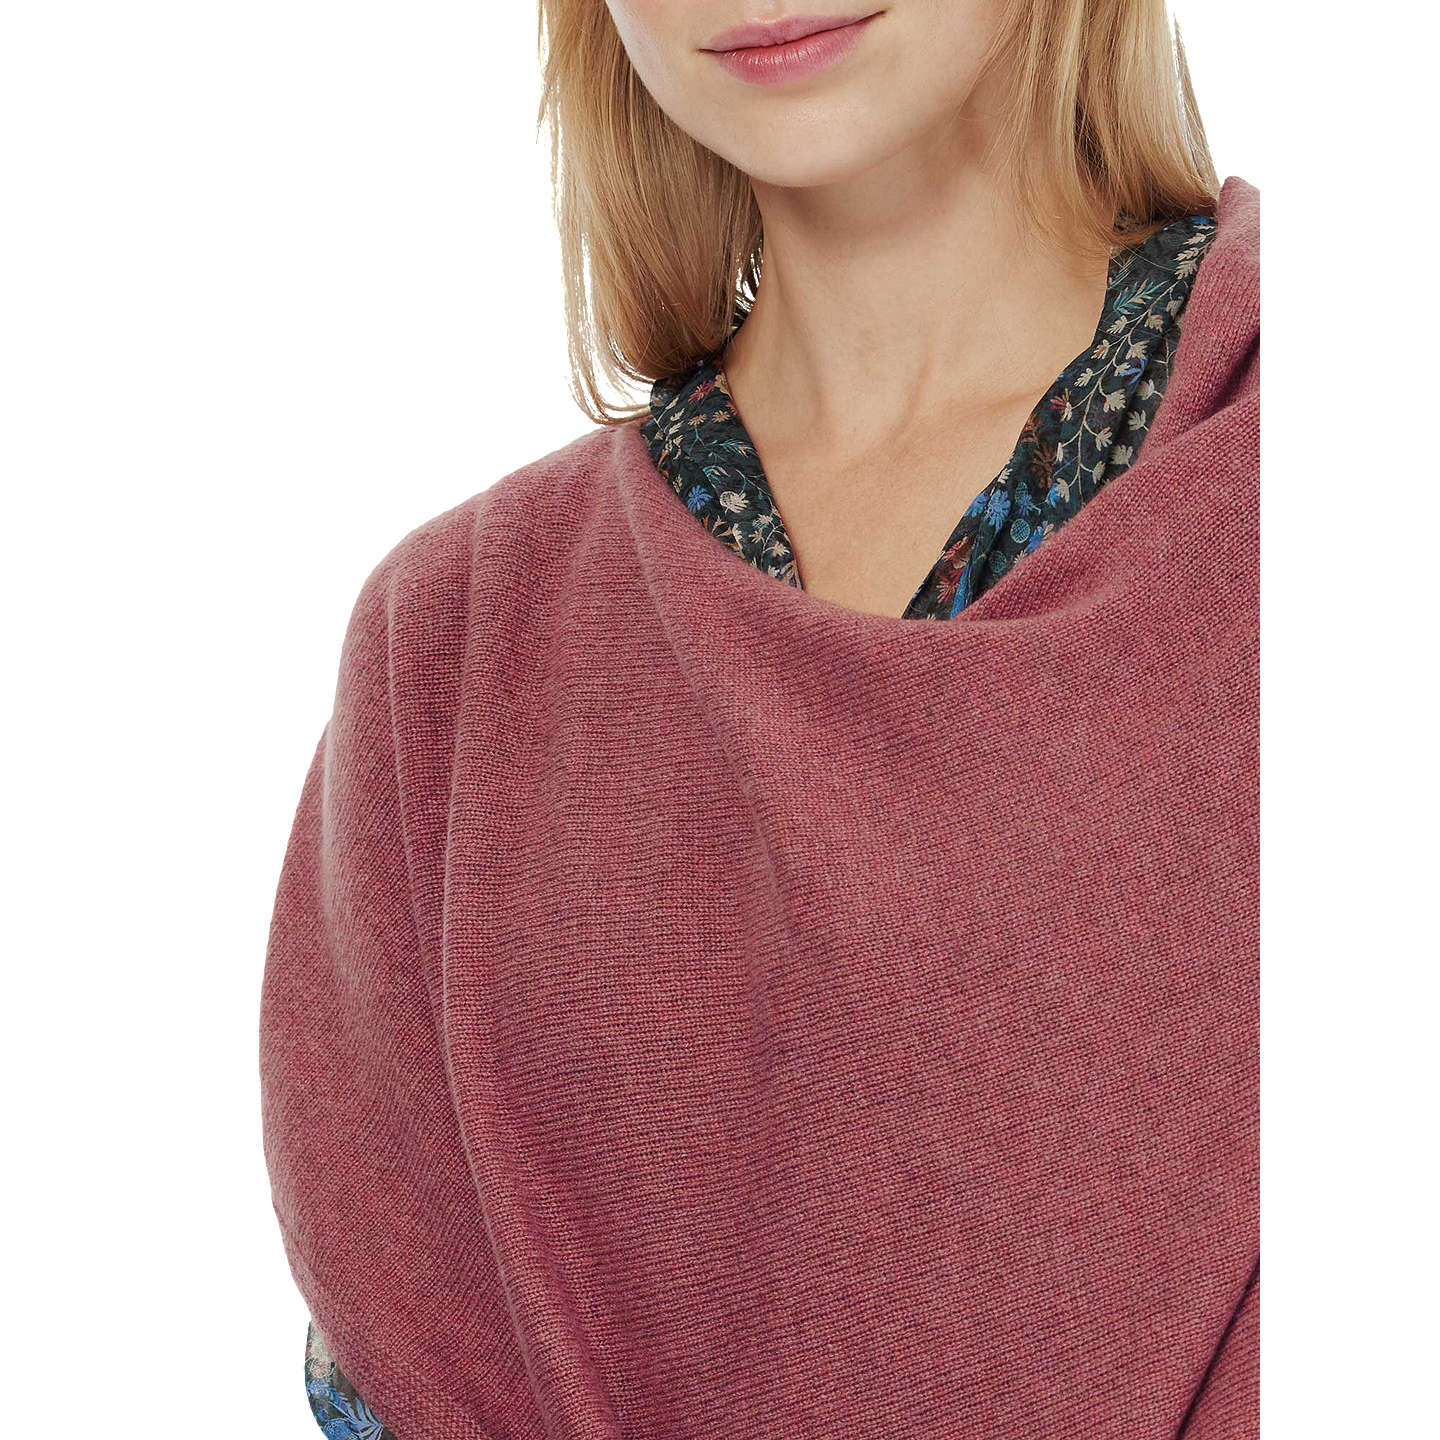 BuyBrora Cashmere Gauzy Knit Poncho, Rosewood Online at johnlewis.com